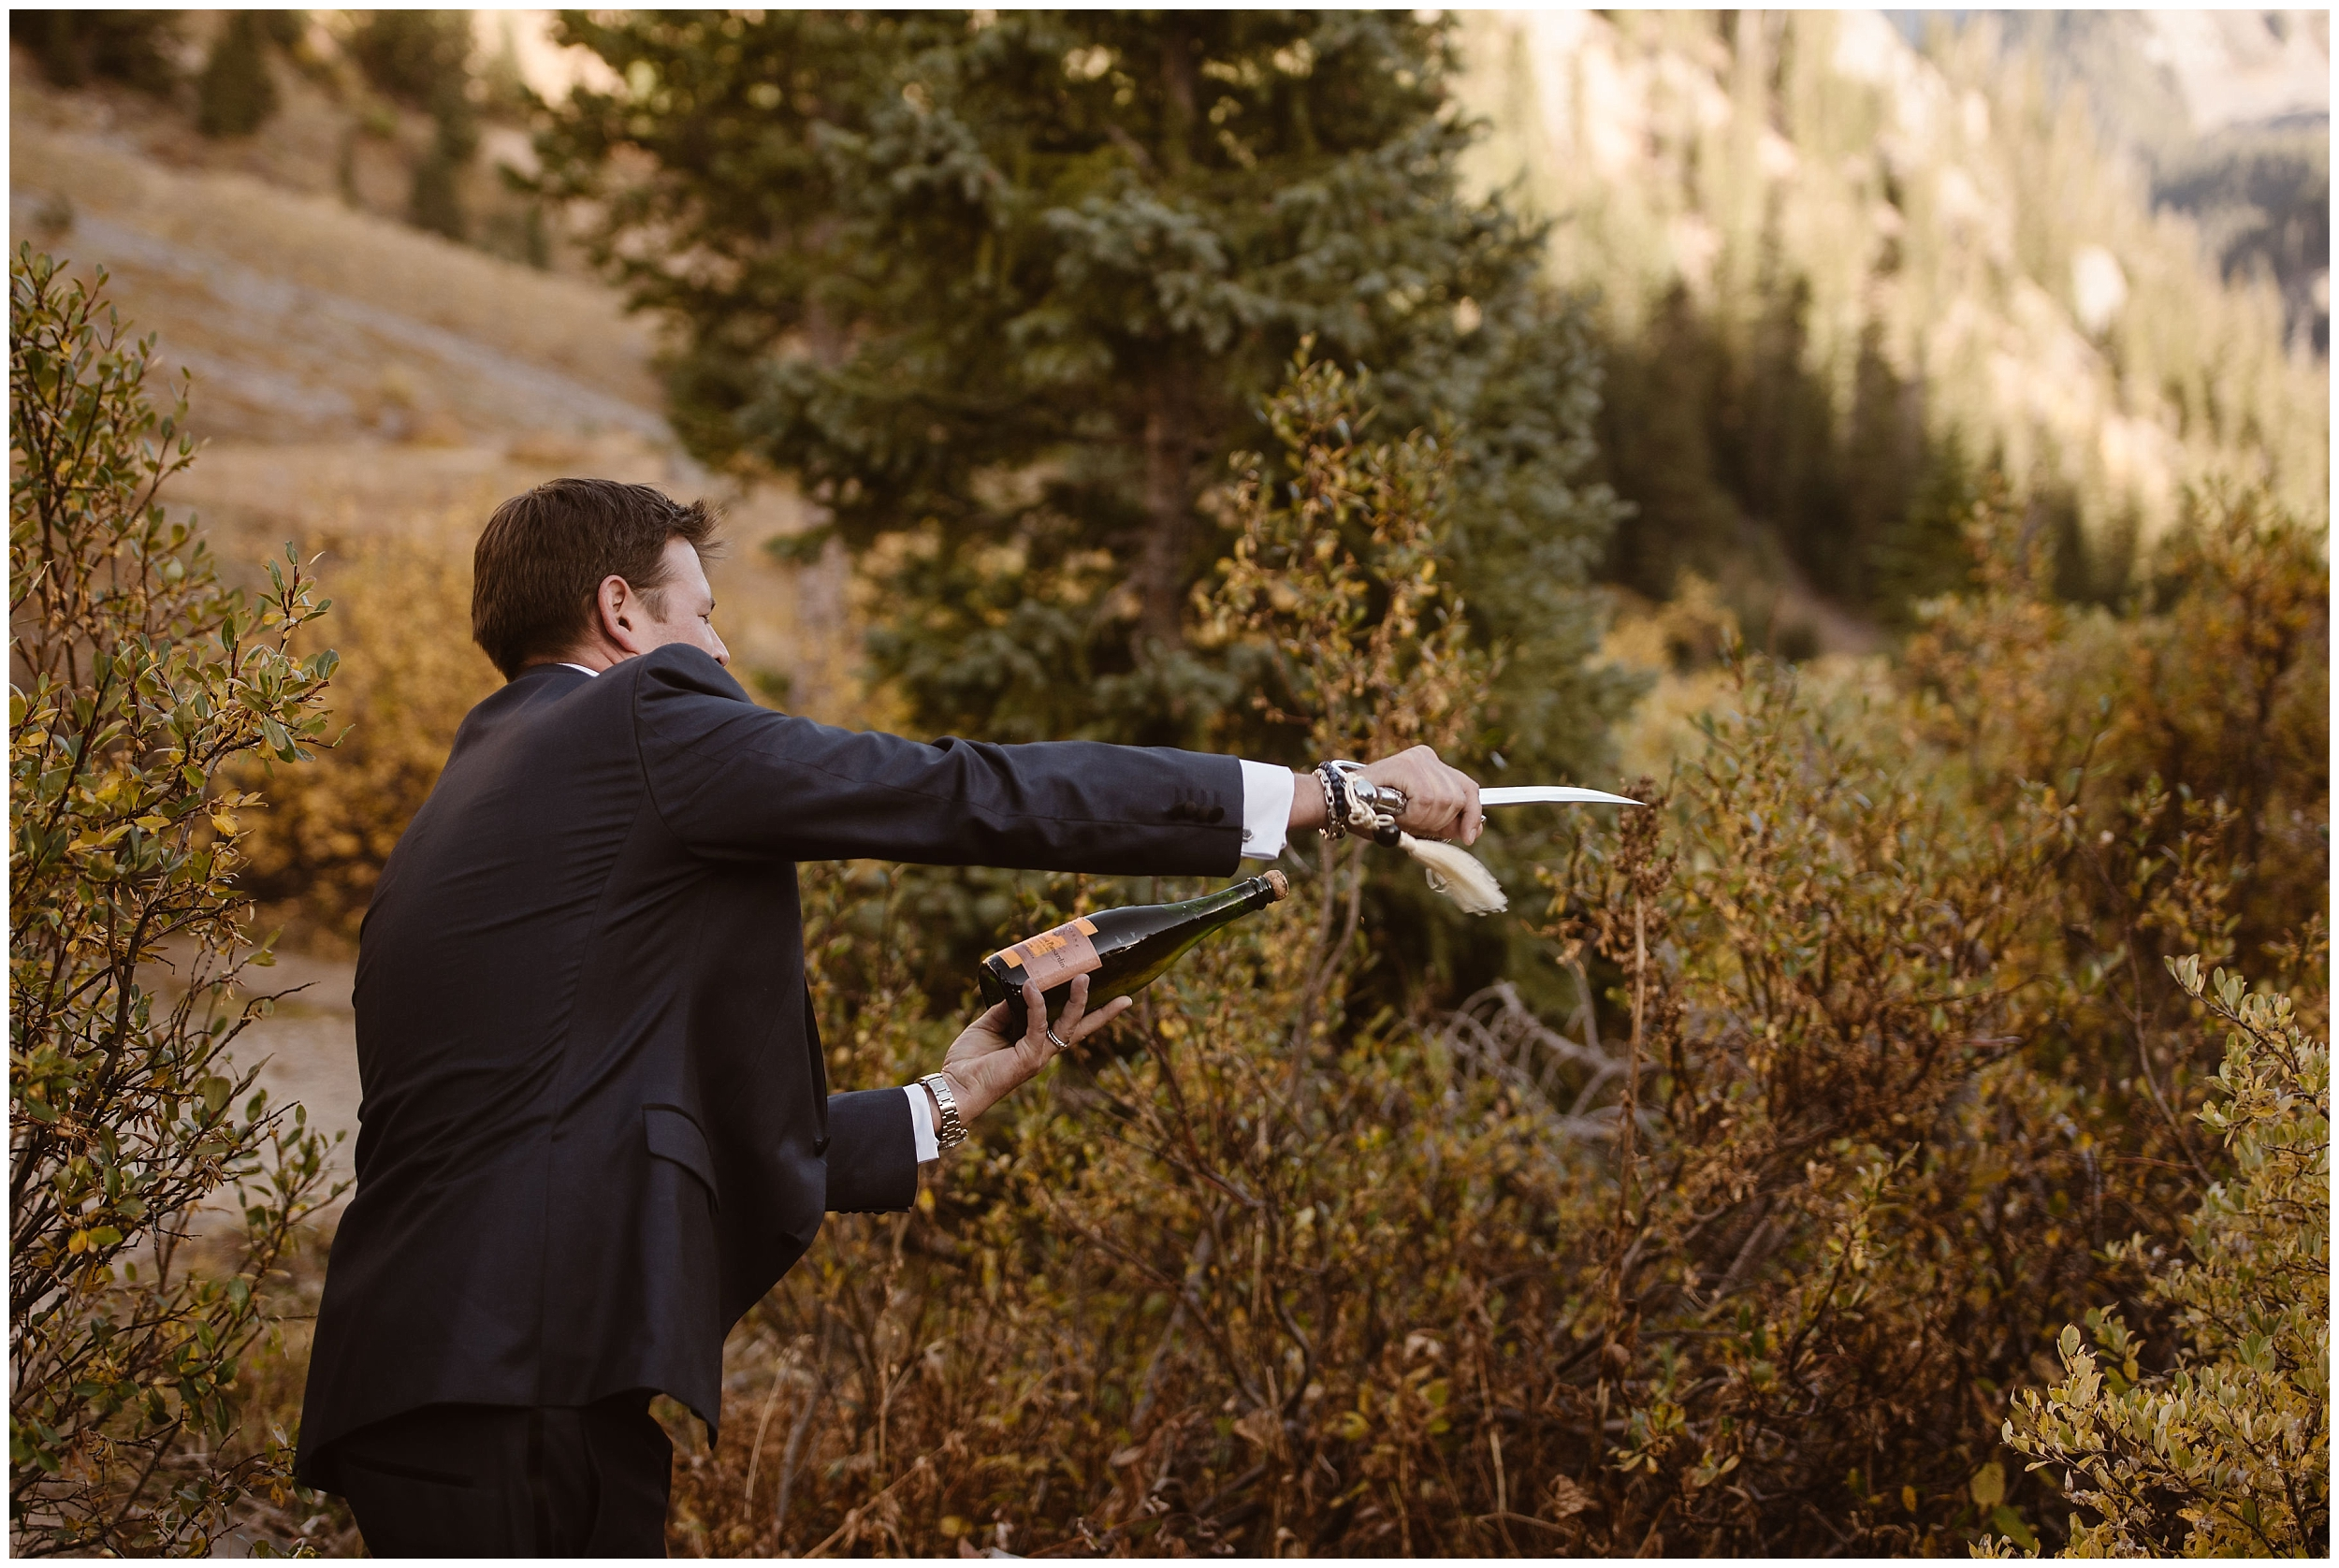 One of the grooms reaches out with his Samurai sword to cut the champagne cork clear off the bottle of champagne for their reception after eloping.